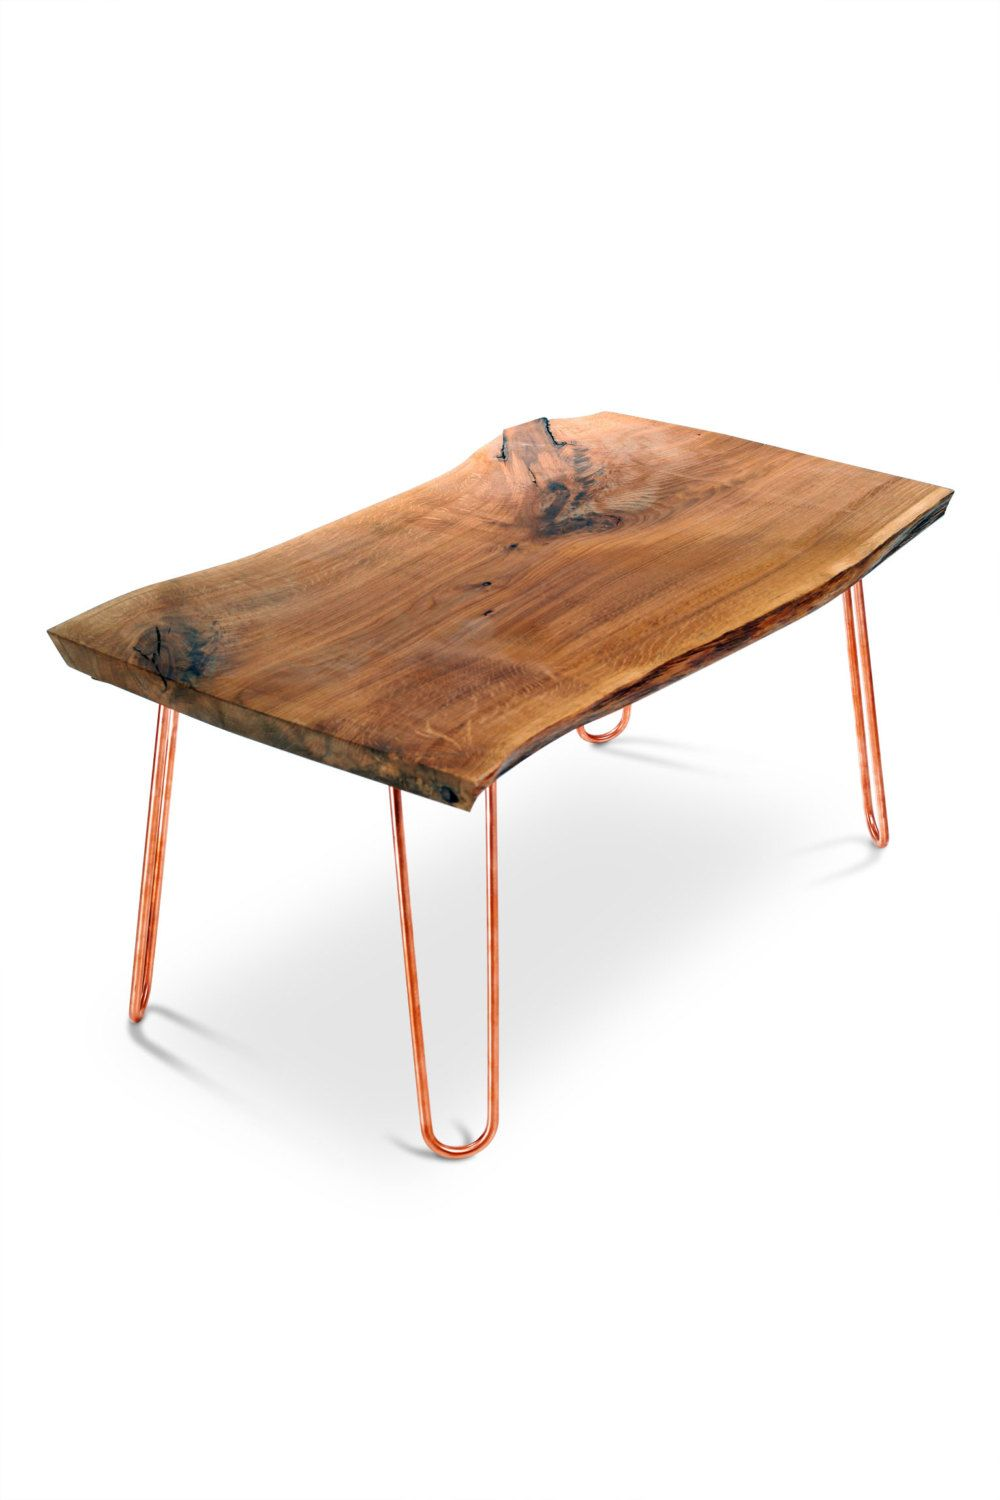 live edge table with copper or brass hairpin legs mid century furniture reclaimed wood. Black Bedroom Furniture Sets. Home Design Ideas